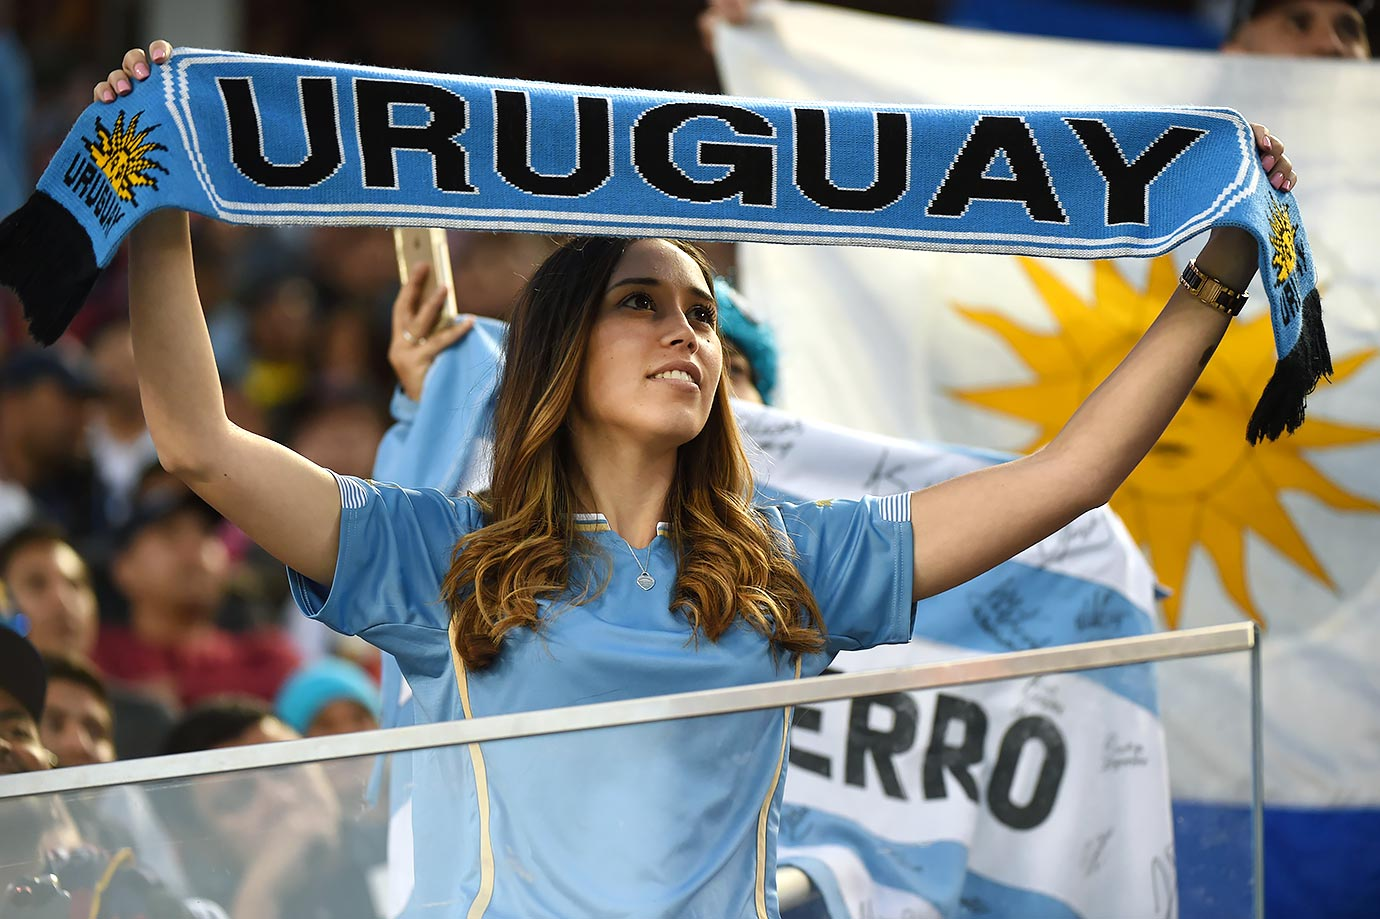 images, pictures and photos of beautiful and hot Uruguayan girls and female Uruguay Fans In World Cup 2018